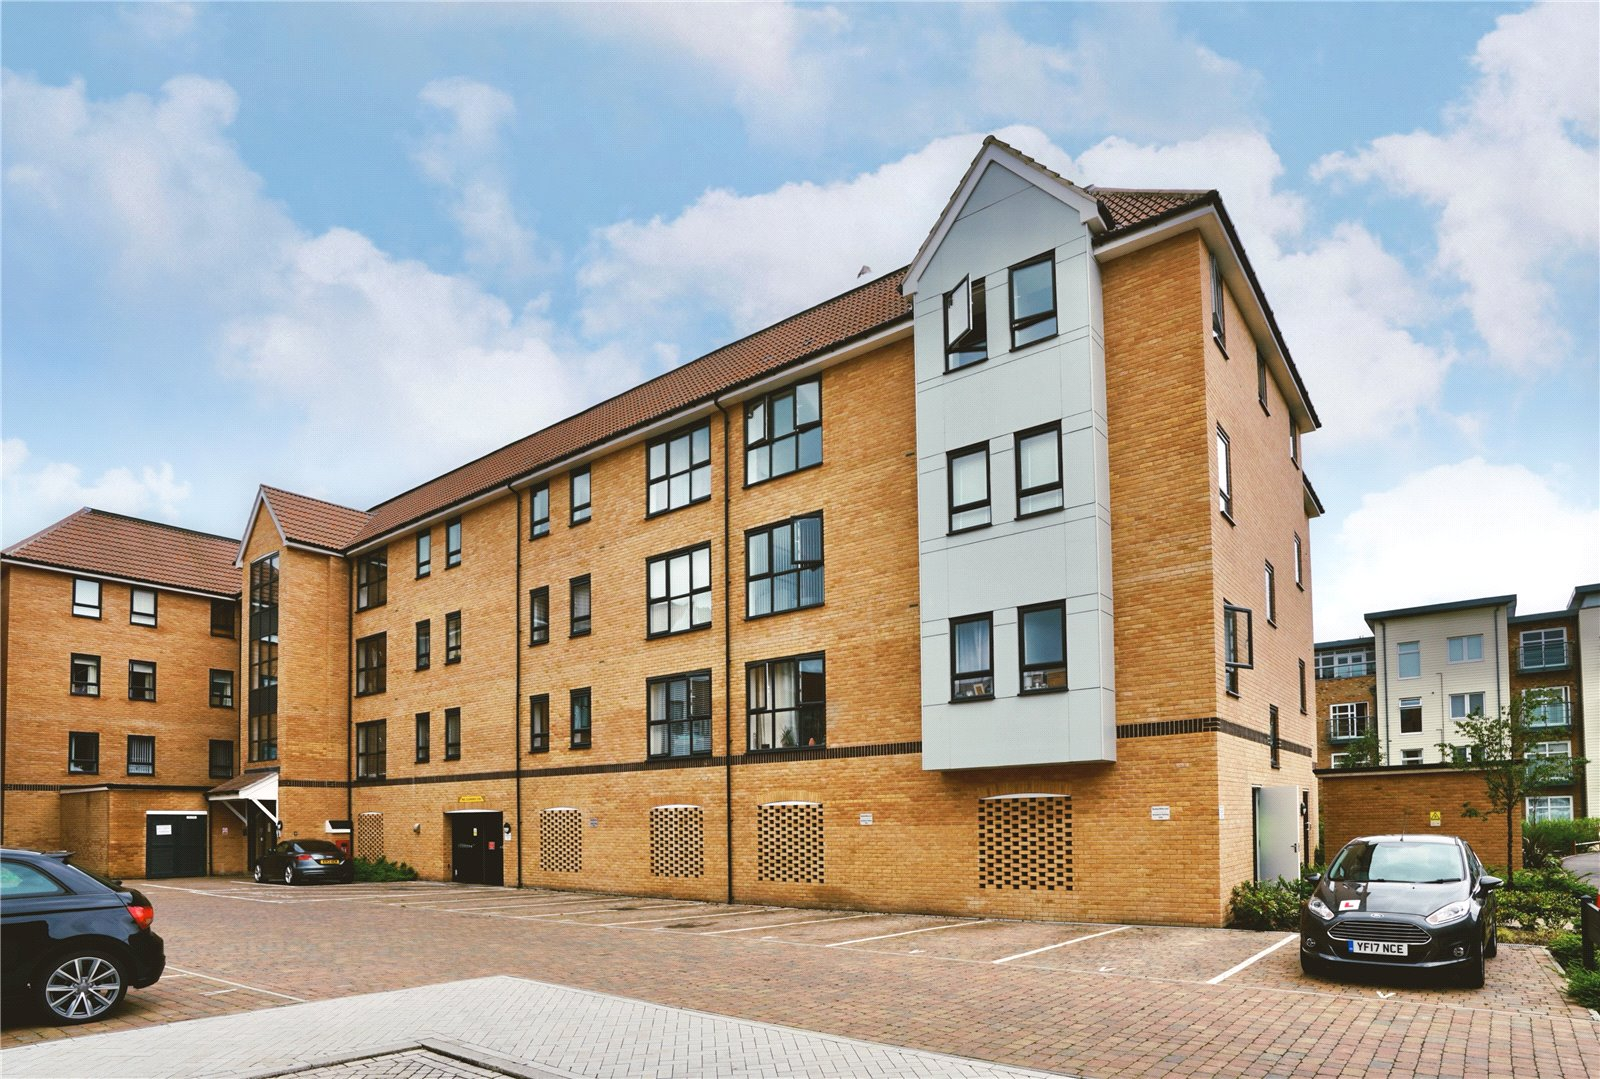 2 bed apartment for sale in Marbled White Court, Little Paxton, PE19